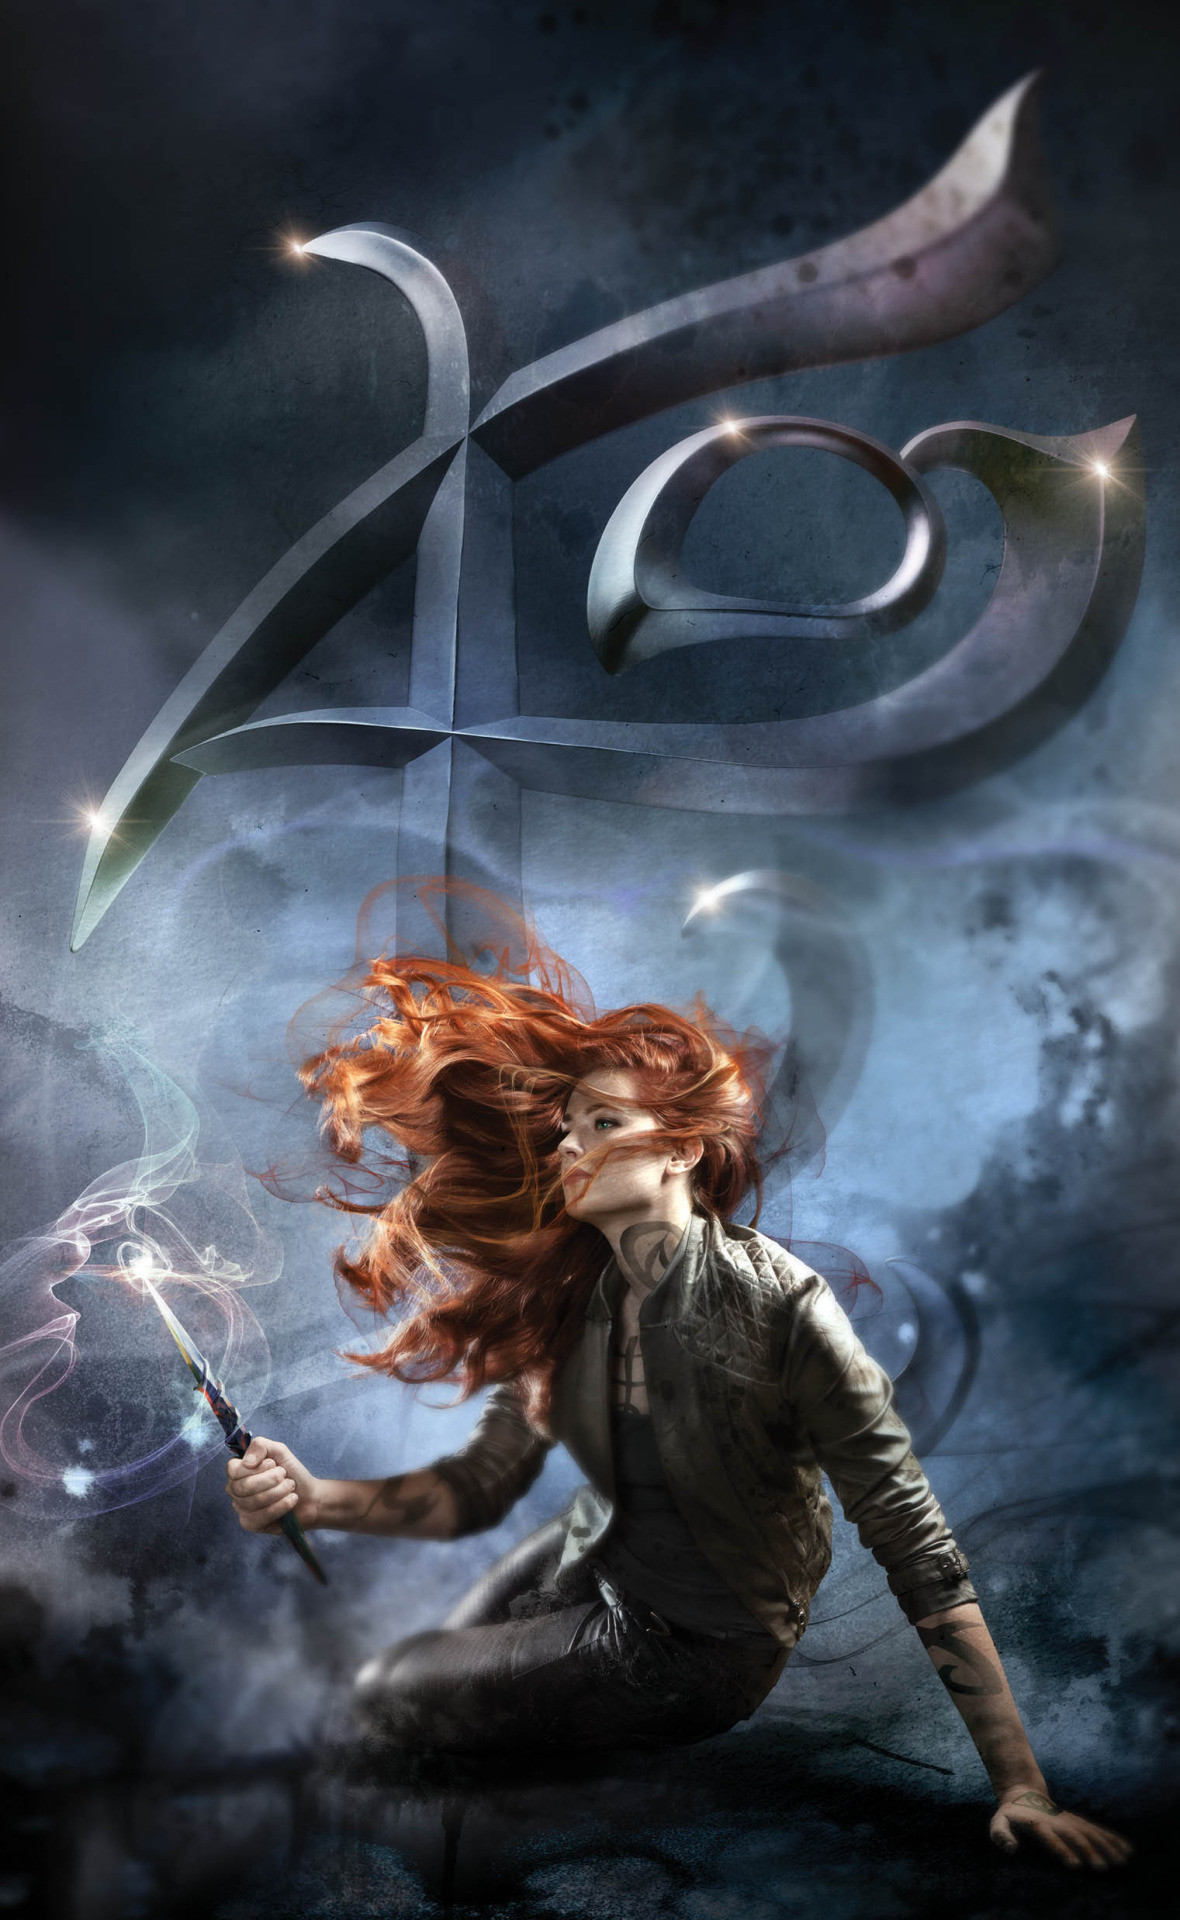 Clary – City of Ashes (Shadowhunters, The Mortal Instruments, book two) by  Cassandra Clare, special edition cover